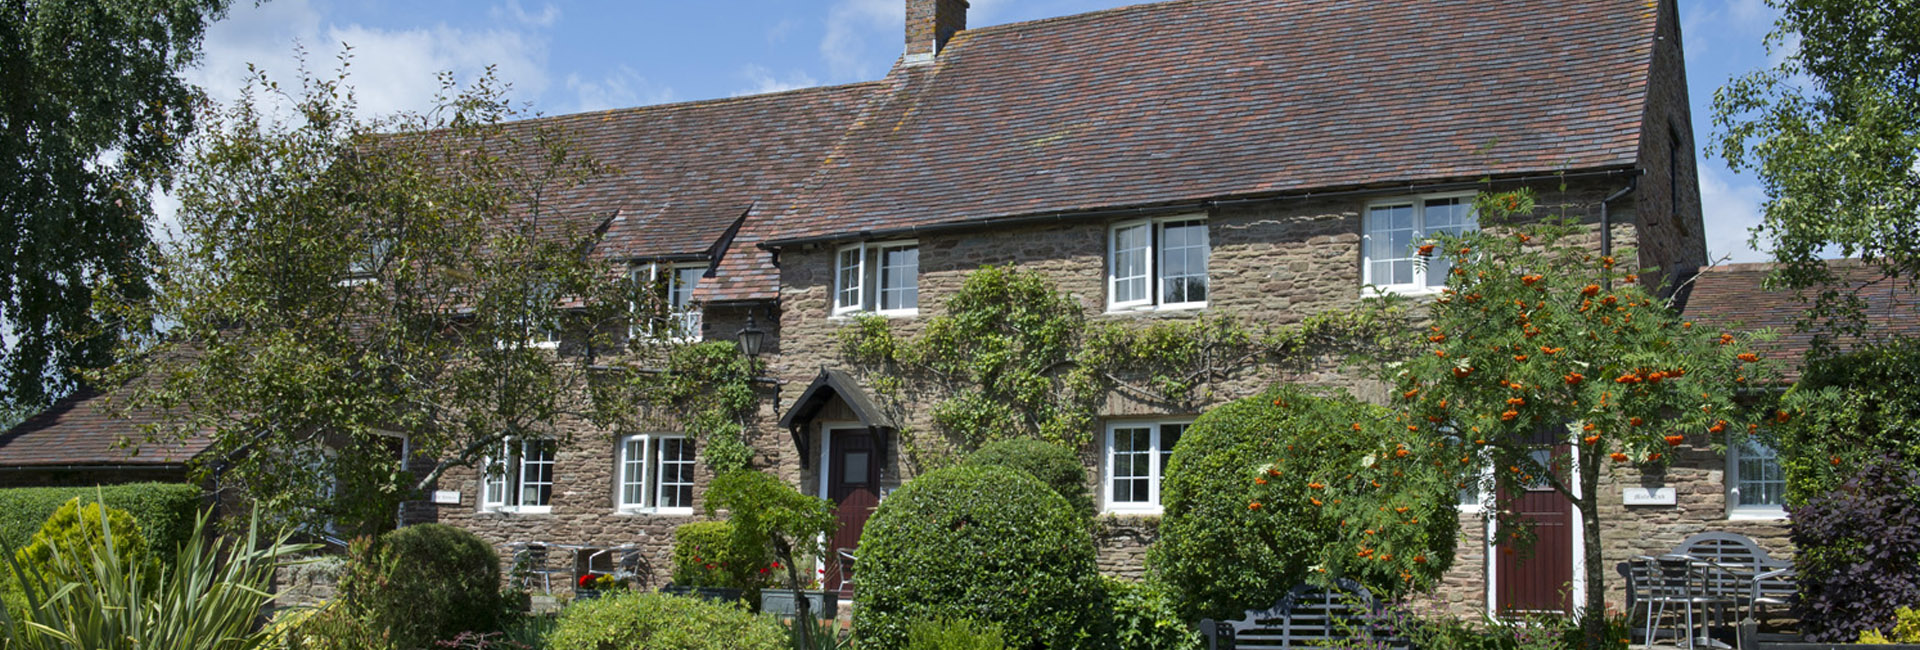 Monmouthshire Holiday Cottages